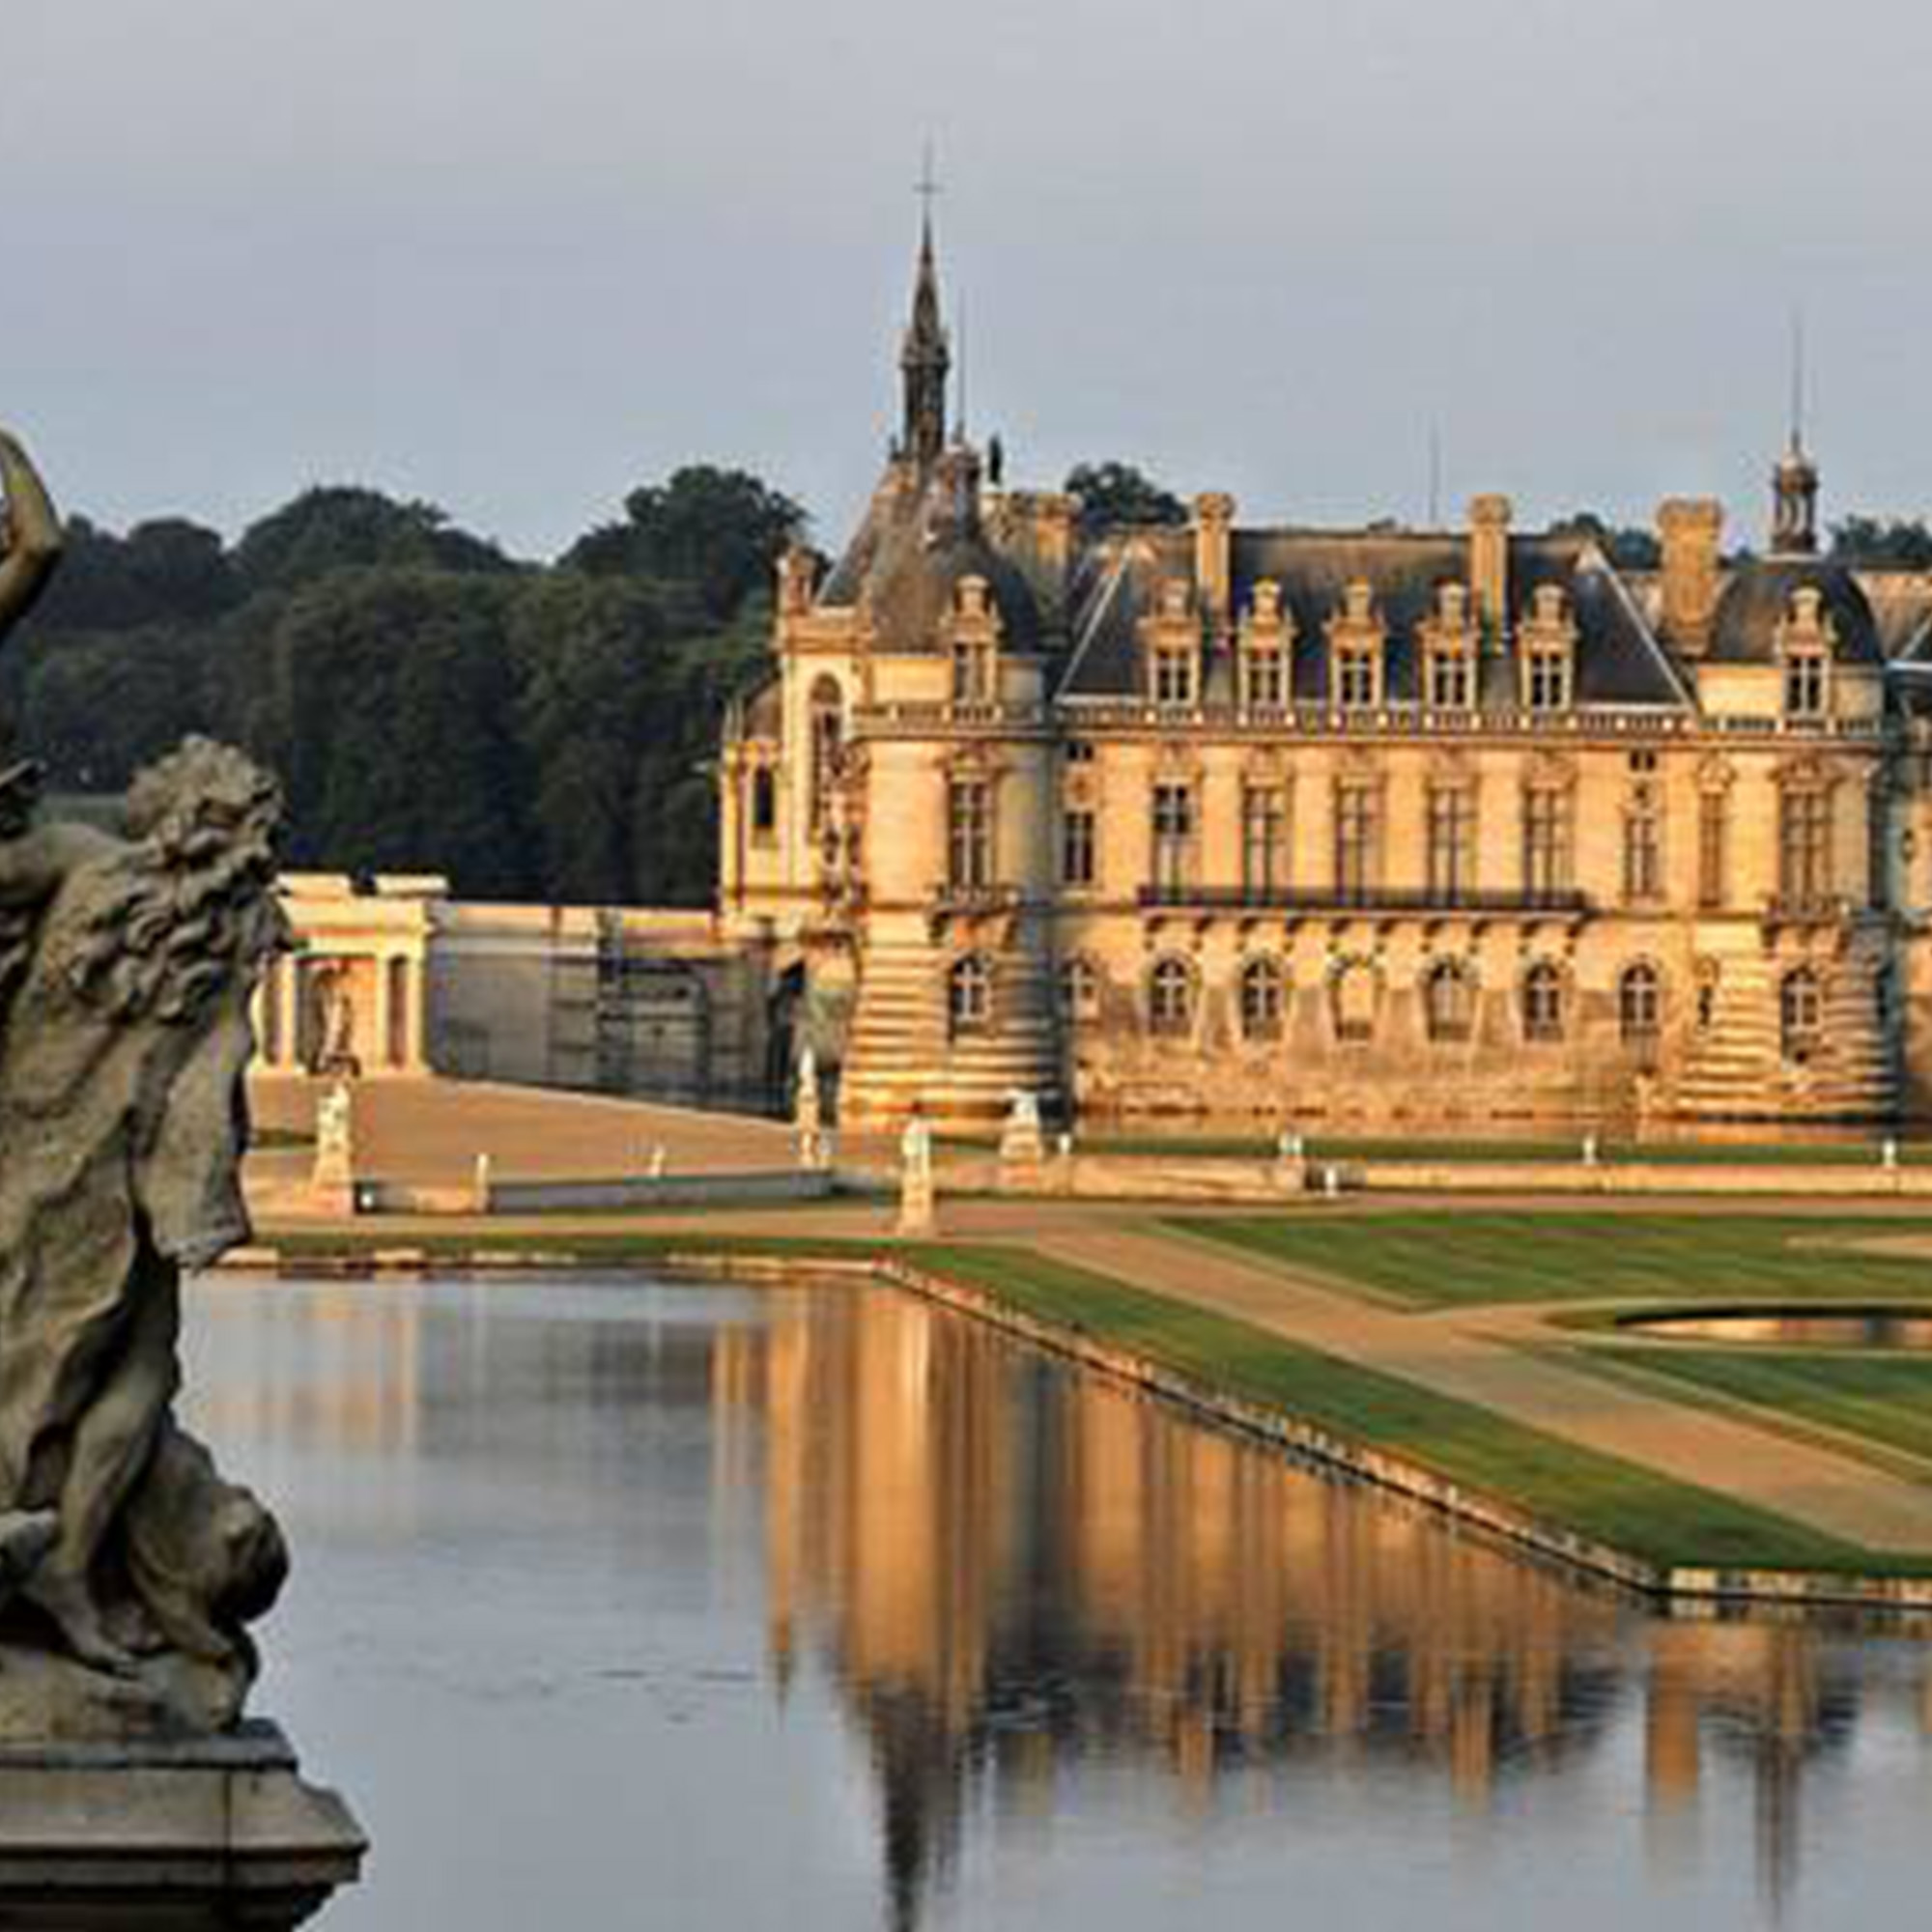 gîte_saint_germain_oise_versigny_0007_Chateau de Chantilly